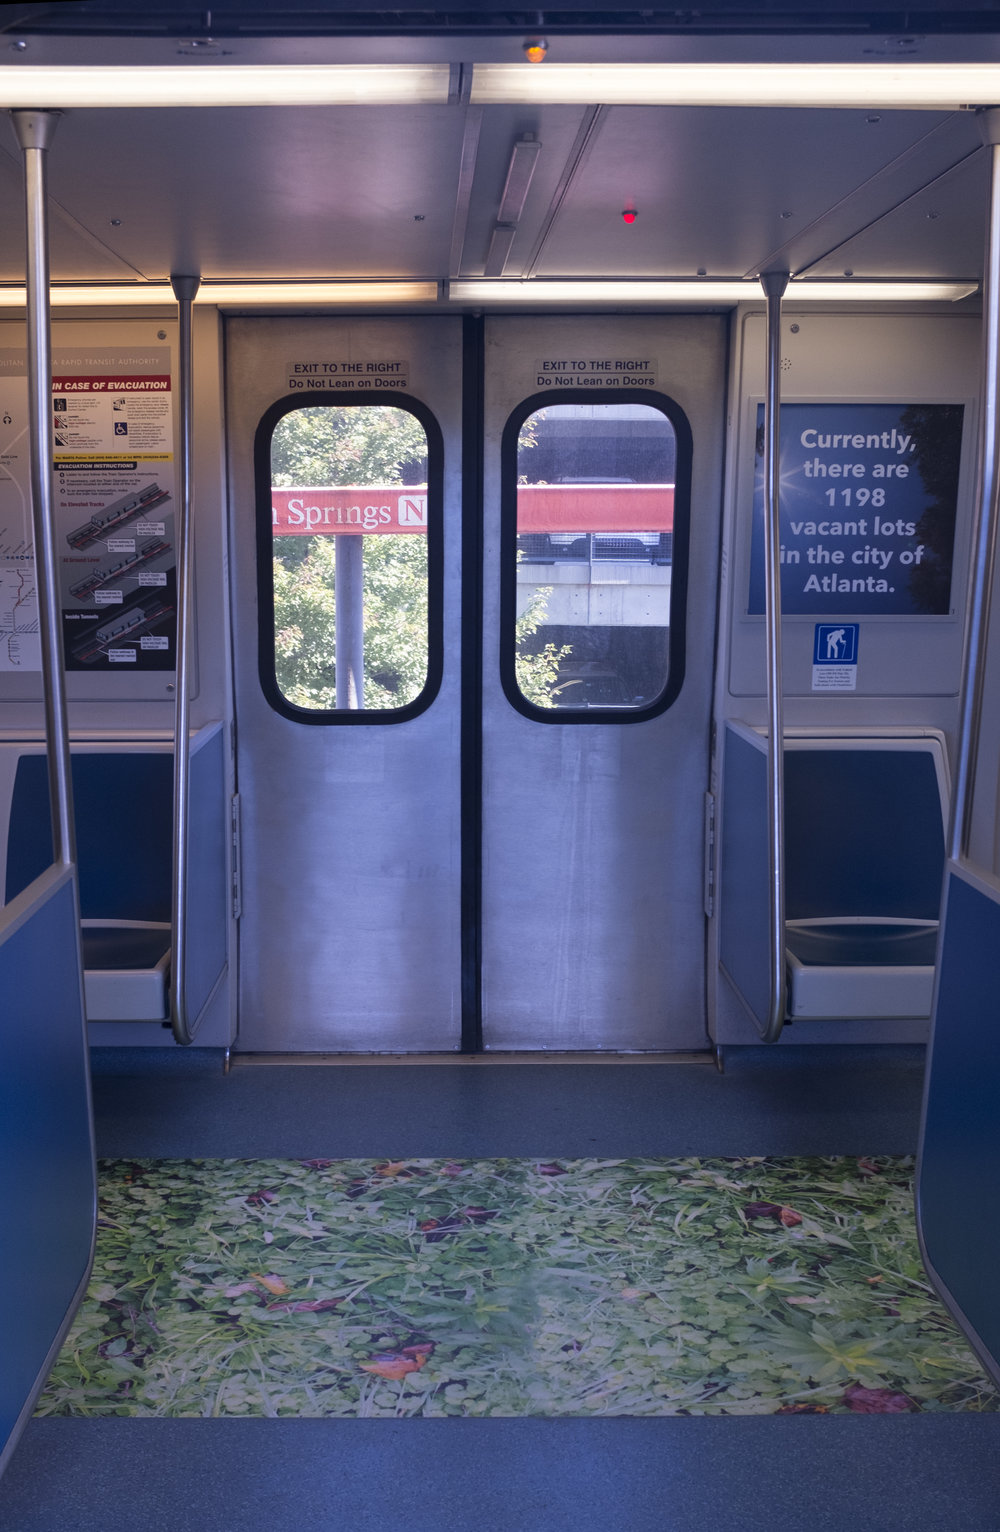 The floor of the train car featured a larger-than-life photograph of the grass, weeds and garbage in one of the city's many vacant lots.